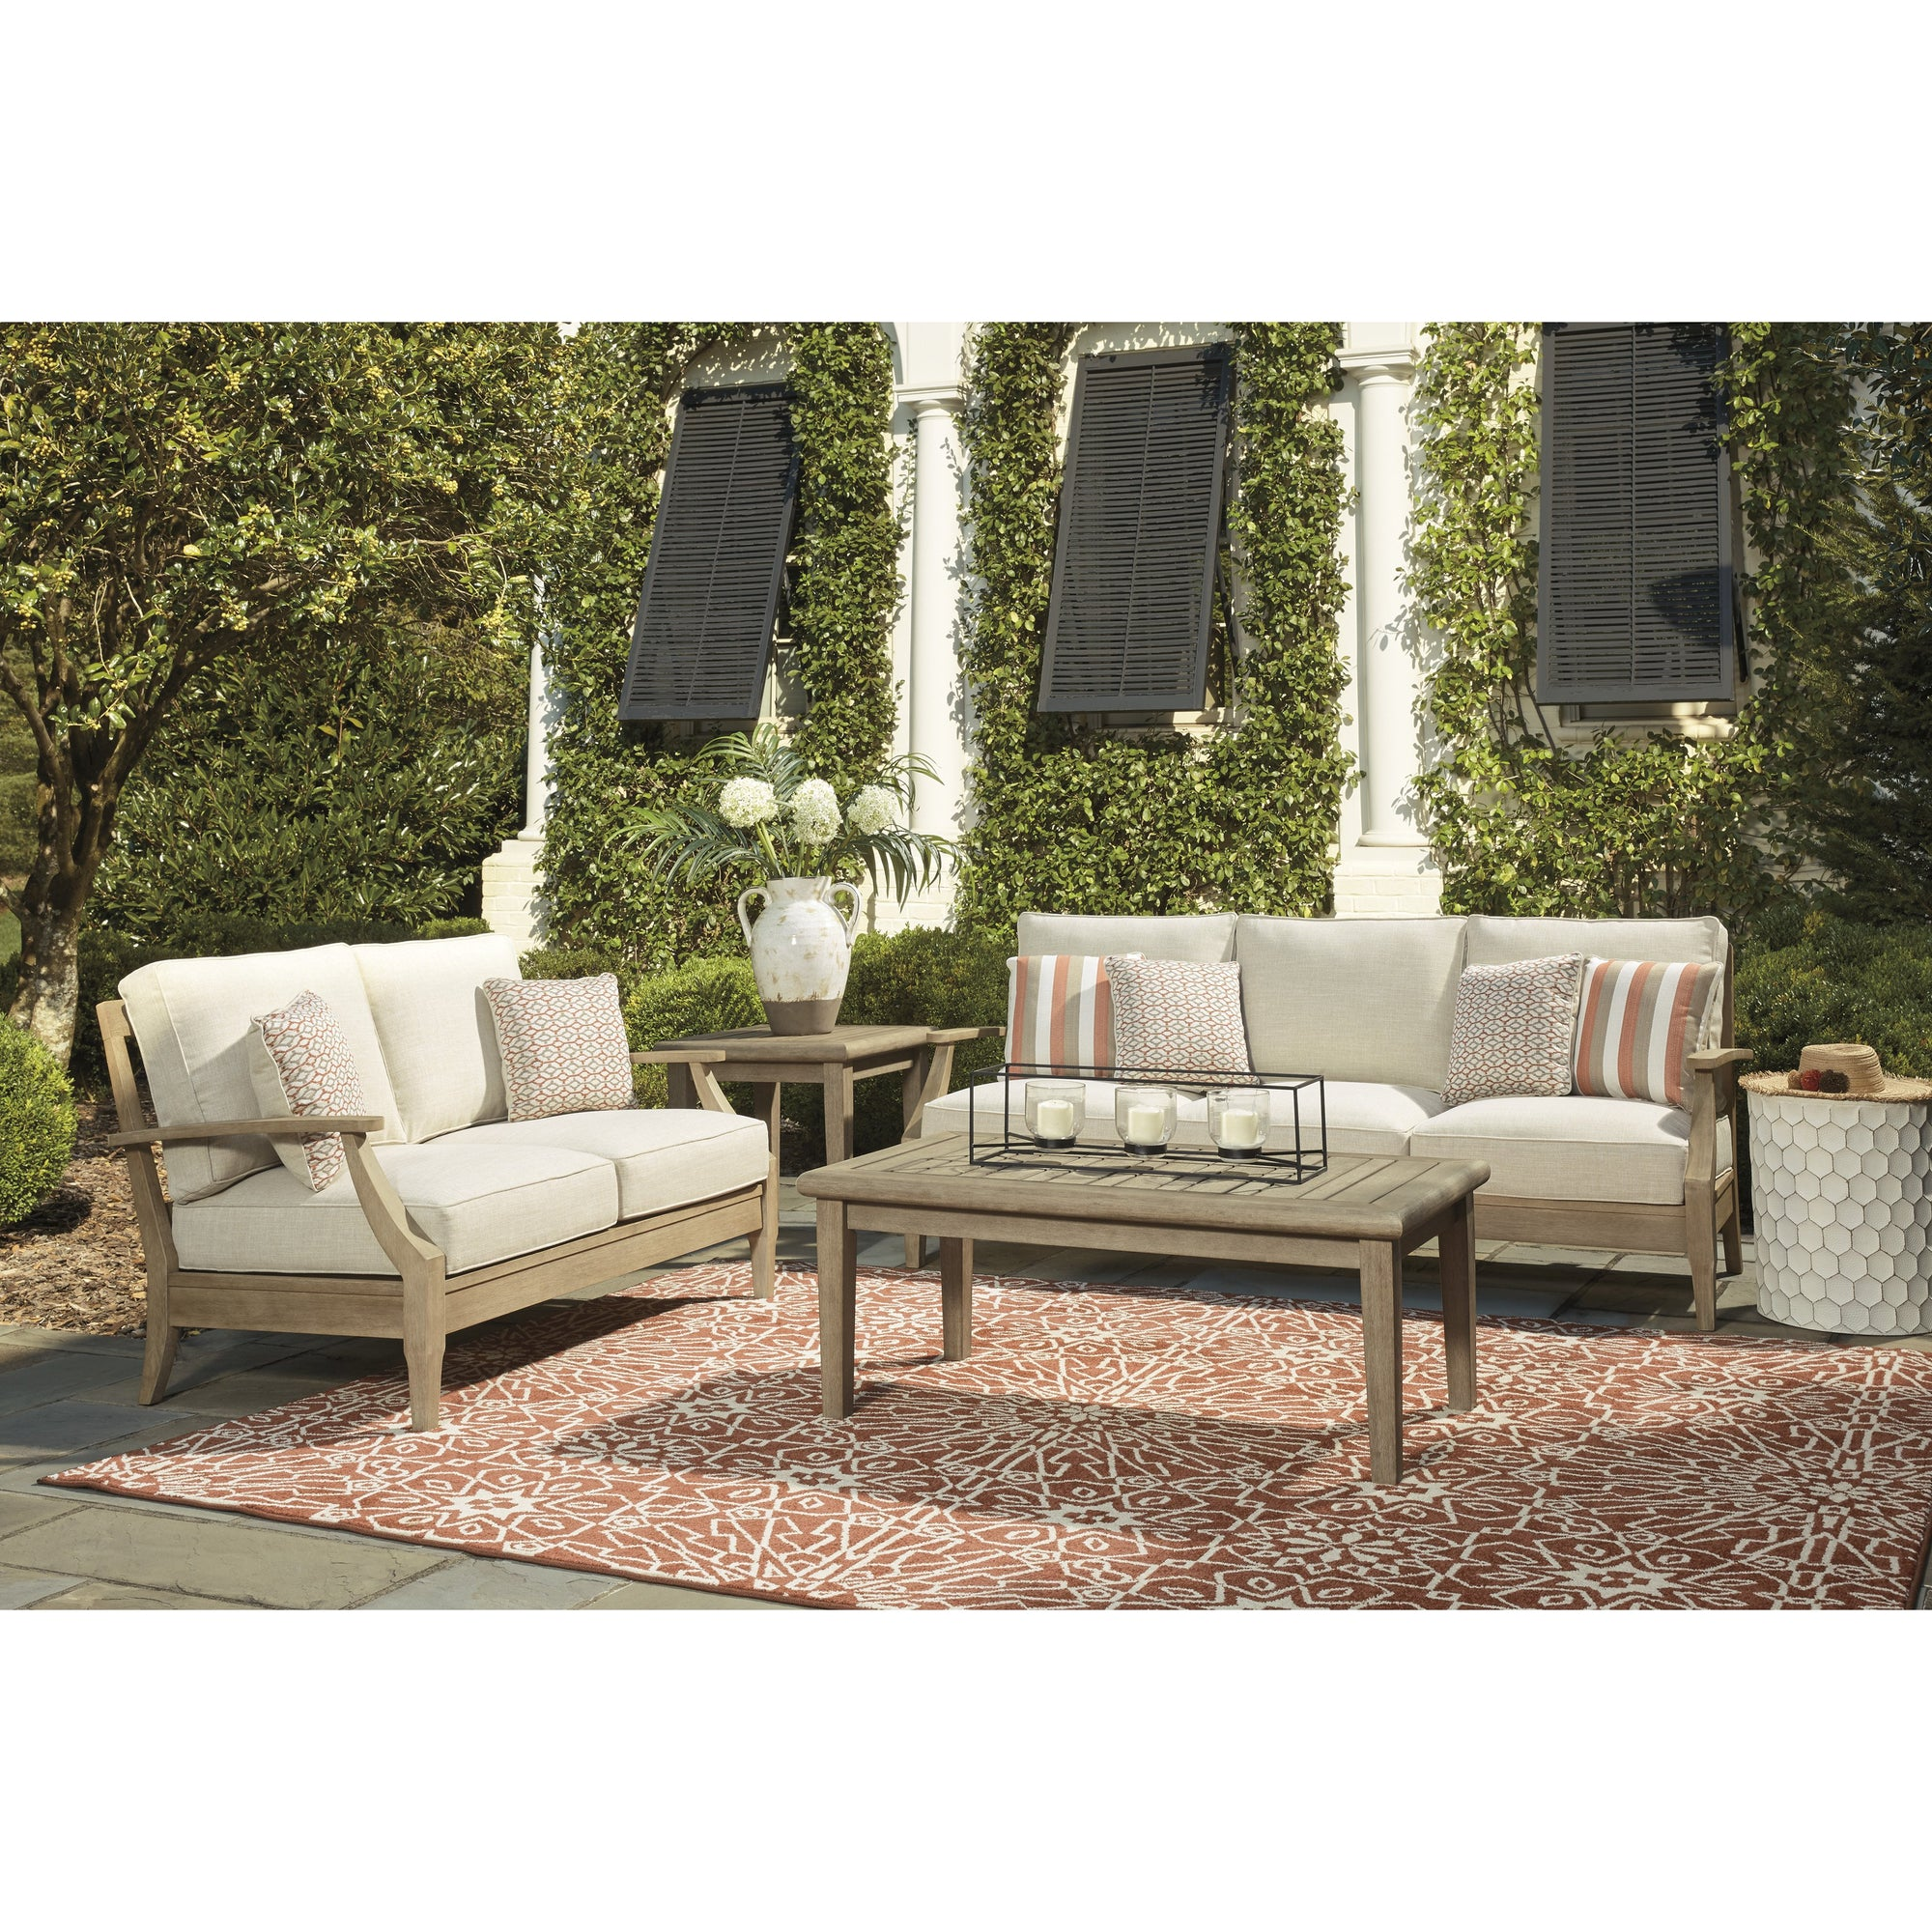 Dune Walk 3-Piece Outdoor Deep Seating Set (Sofa, Loveseat, Slatted Coffee Table)